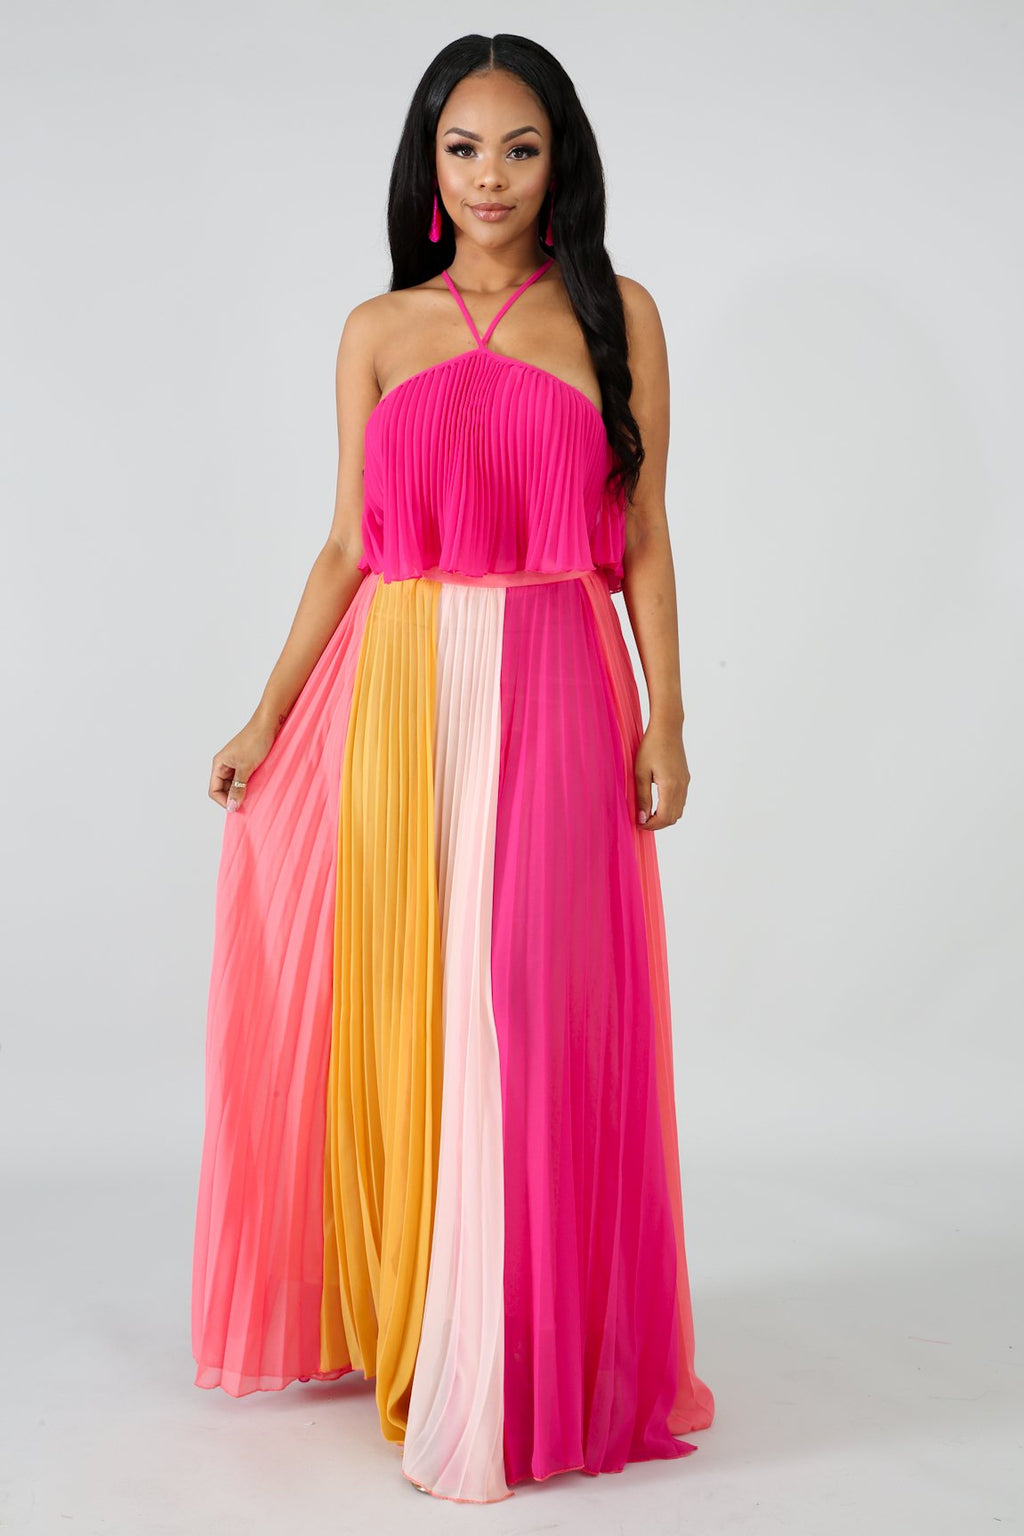 Bae-cation Maxi Skirt Set